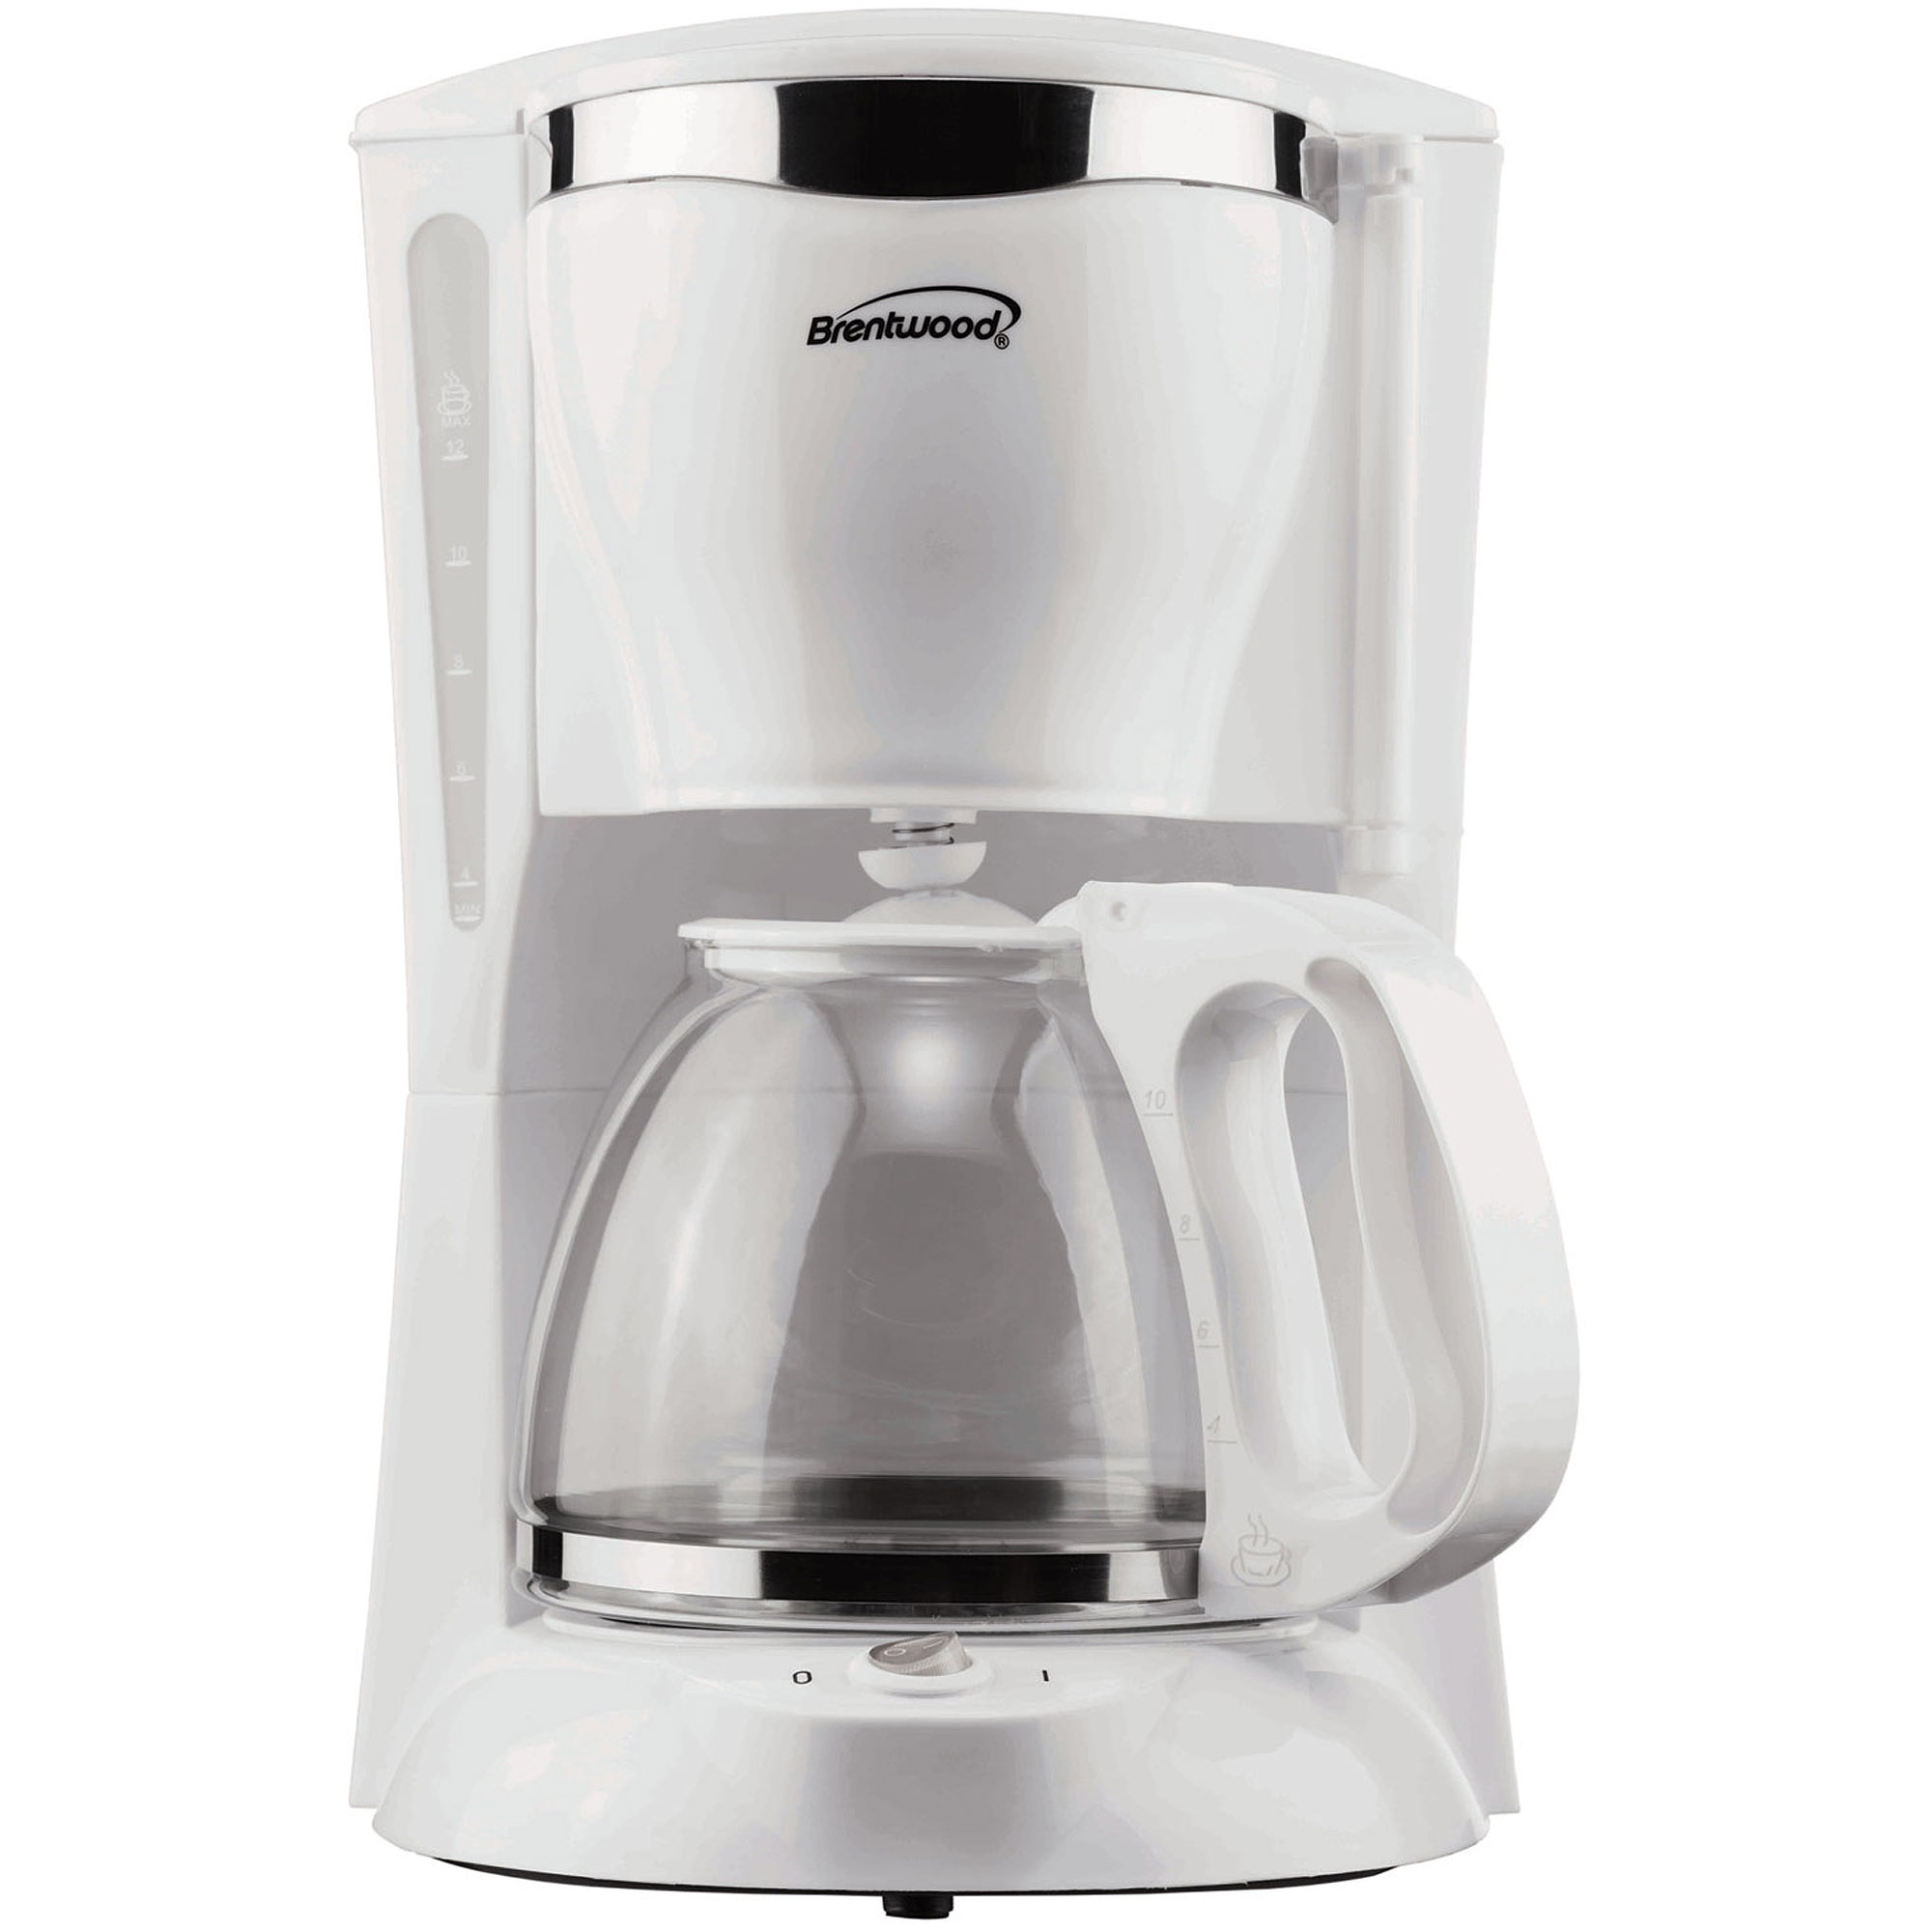 Brentwood TS-216 12-Cup Coffee Maker, White